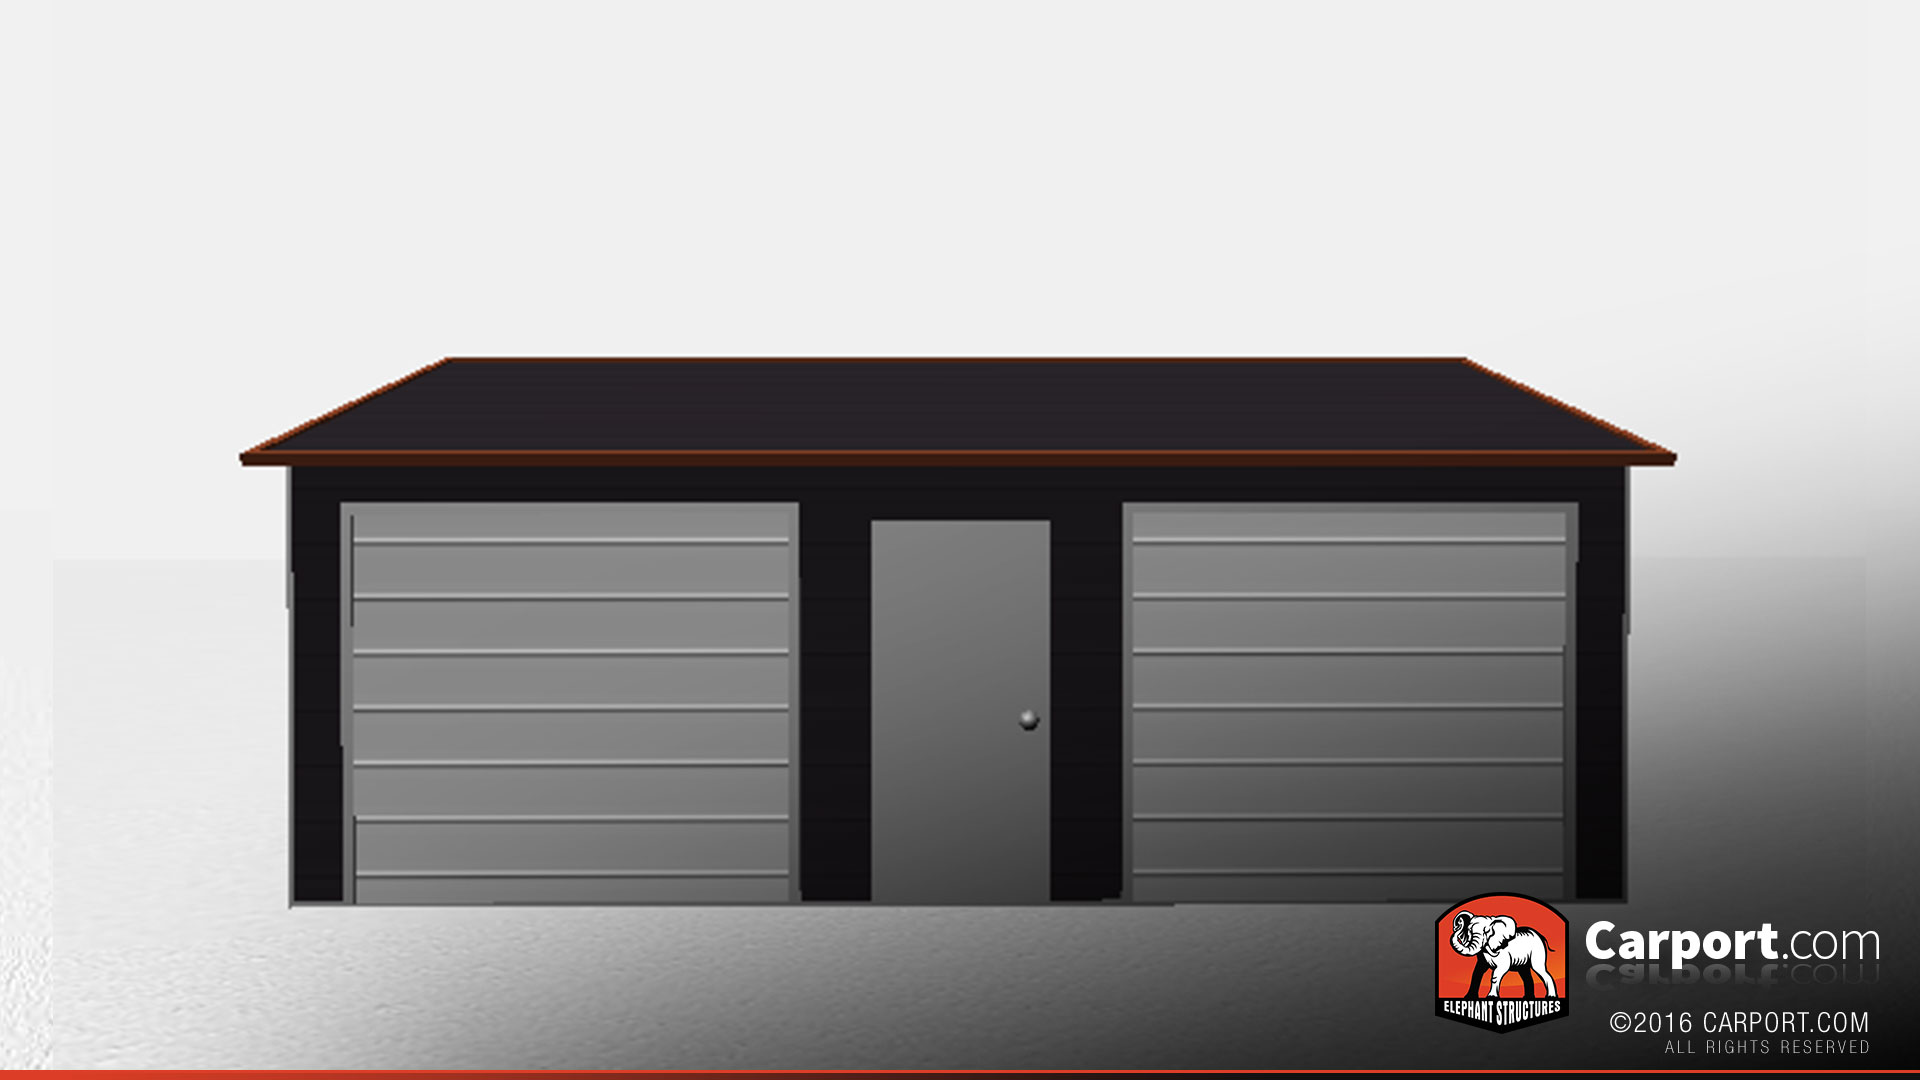 Car Roof Sheet Metal For Garage : Two car metal garage with boxed eave roof